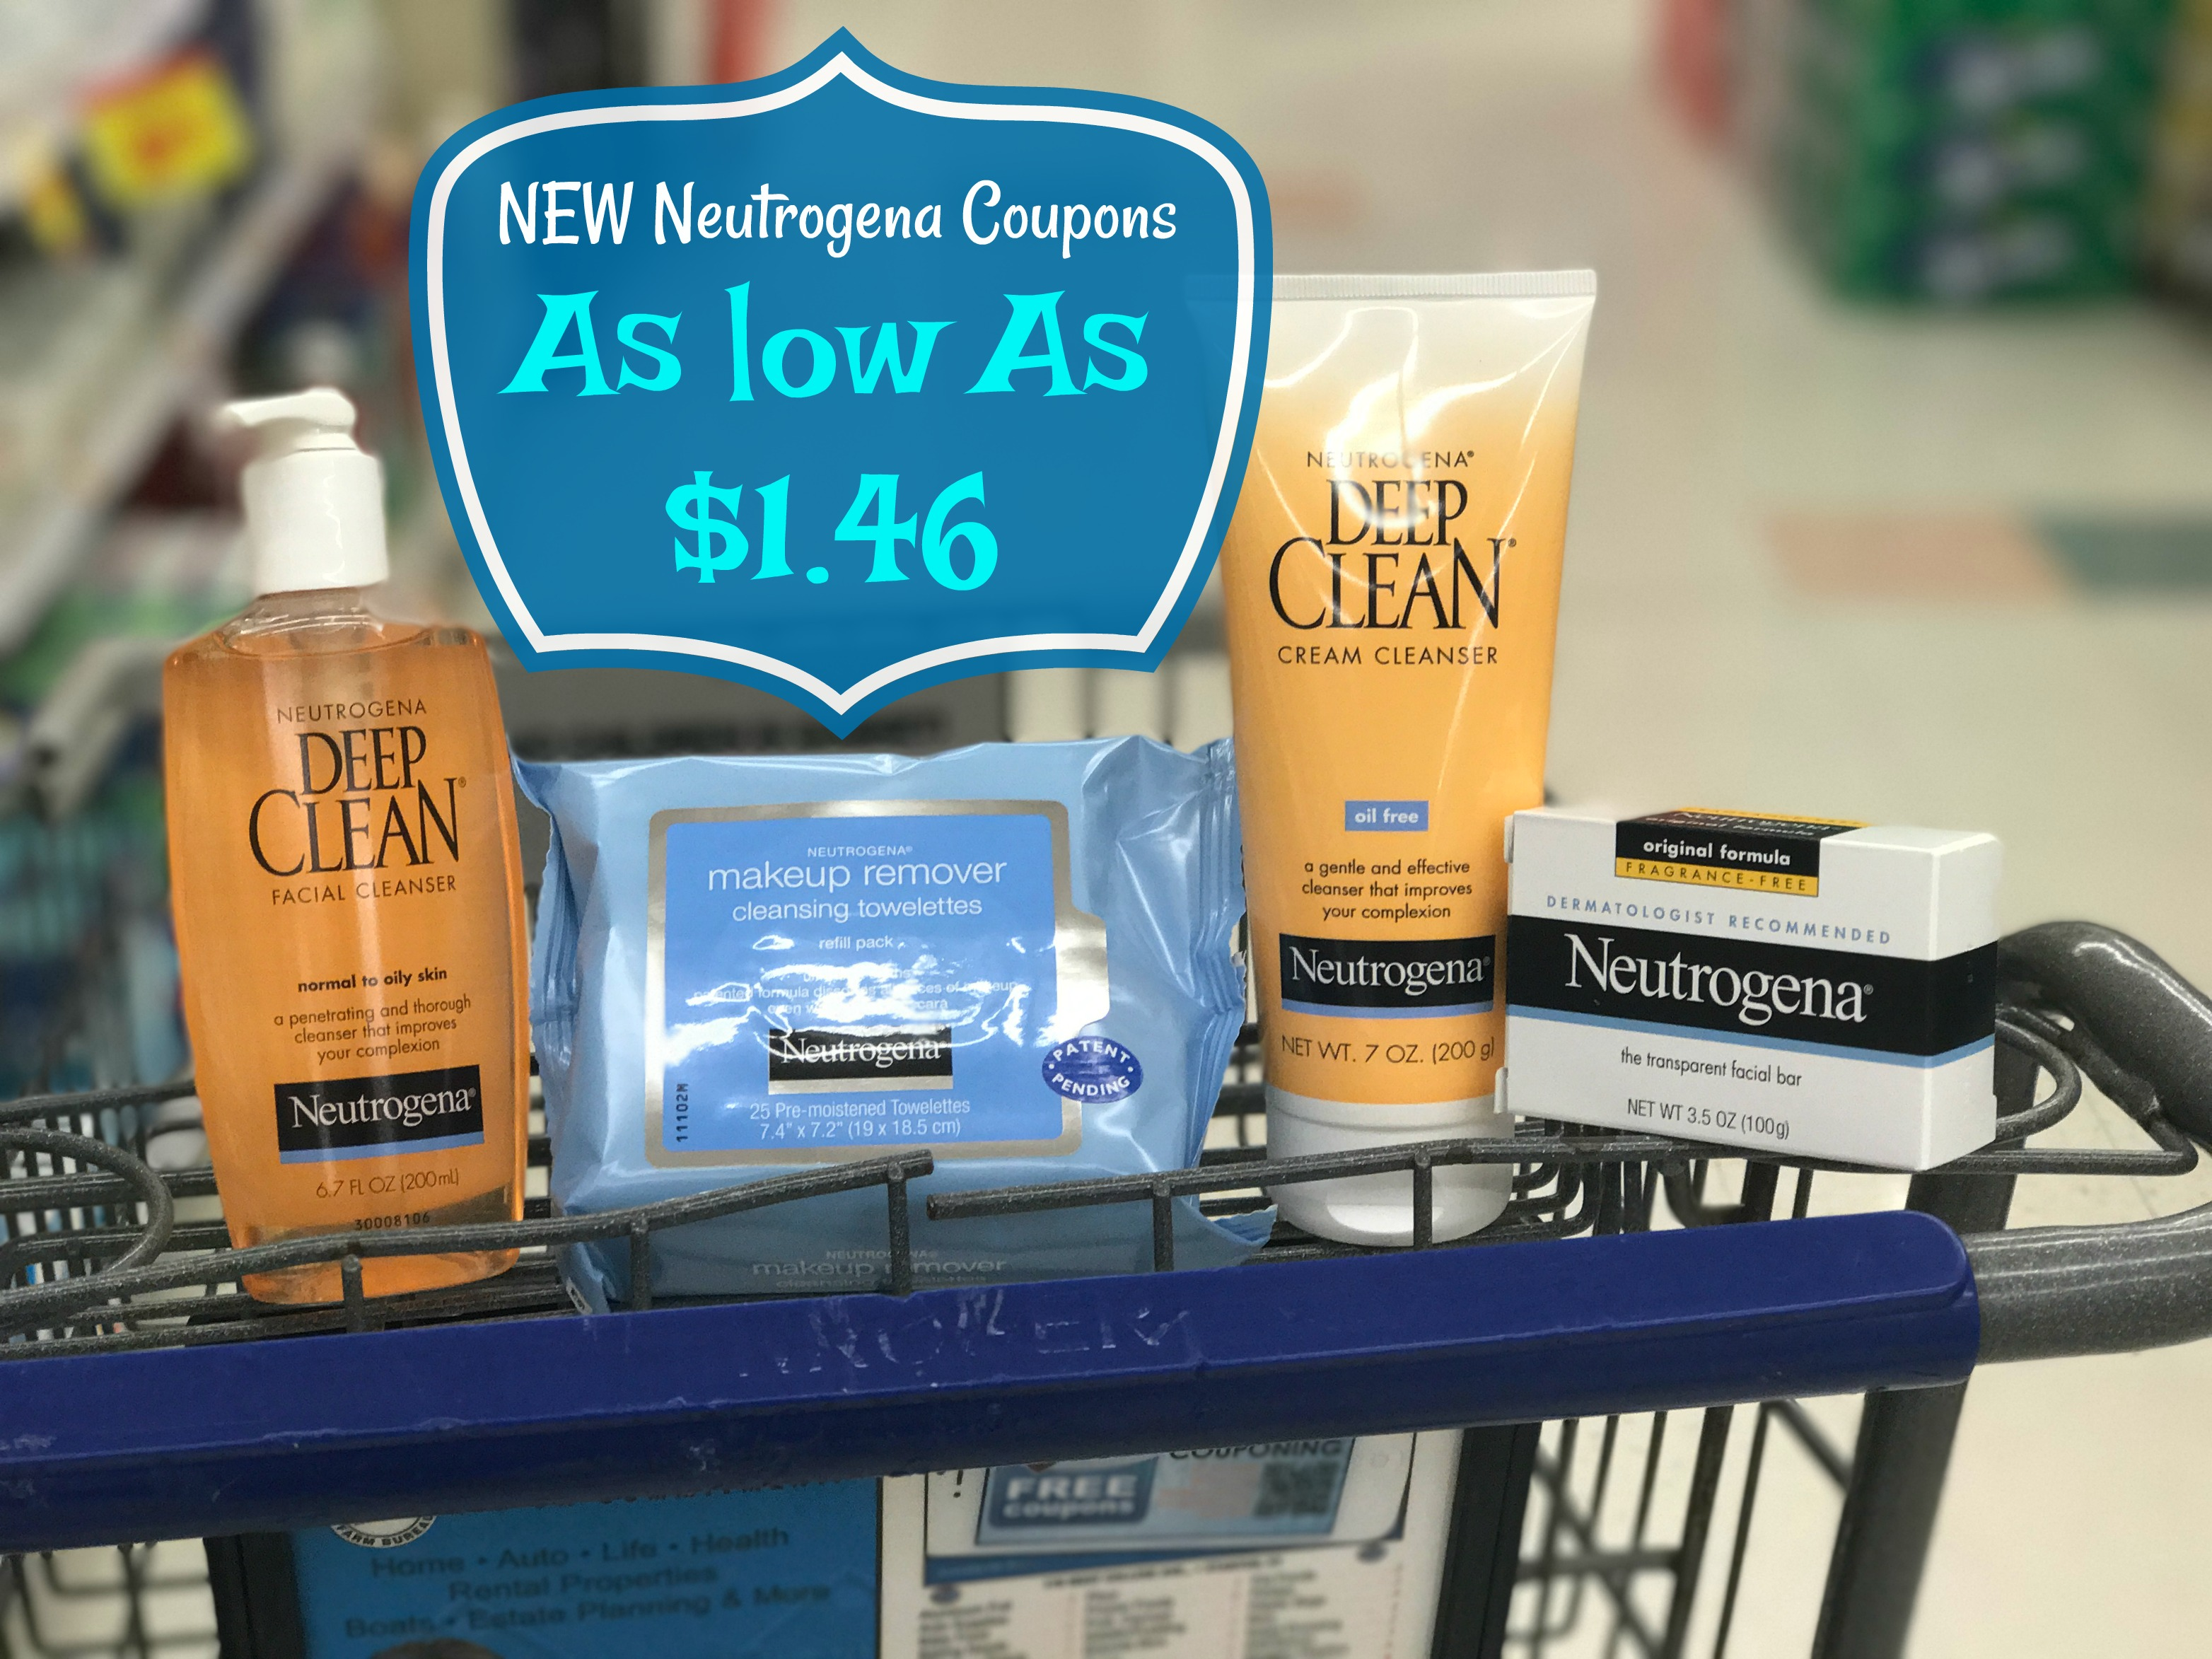 NEW Neutrogena Coupons = Facial items as low as $1.46 each at Kroger! - Kroger Krazy